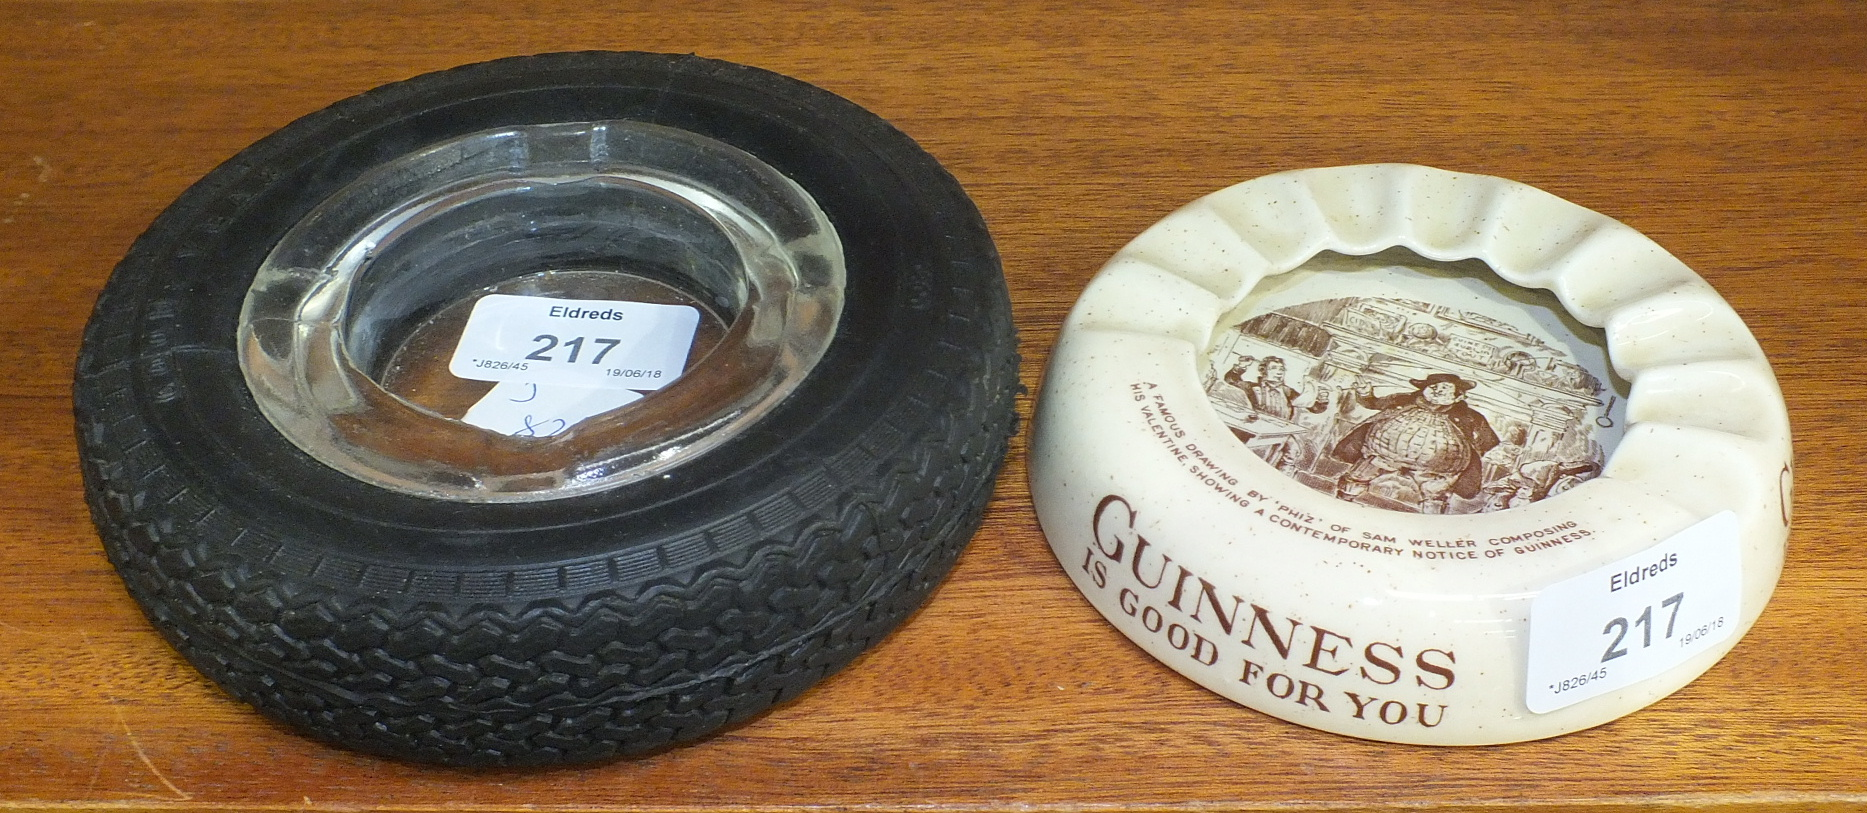 A Wiltshaw & Robinson Ltd 'Guiness is Good for You' advertising ashtray, transfer-printed with a